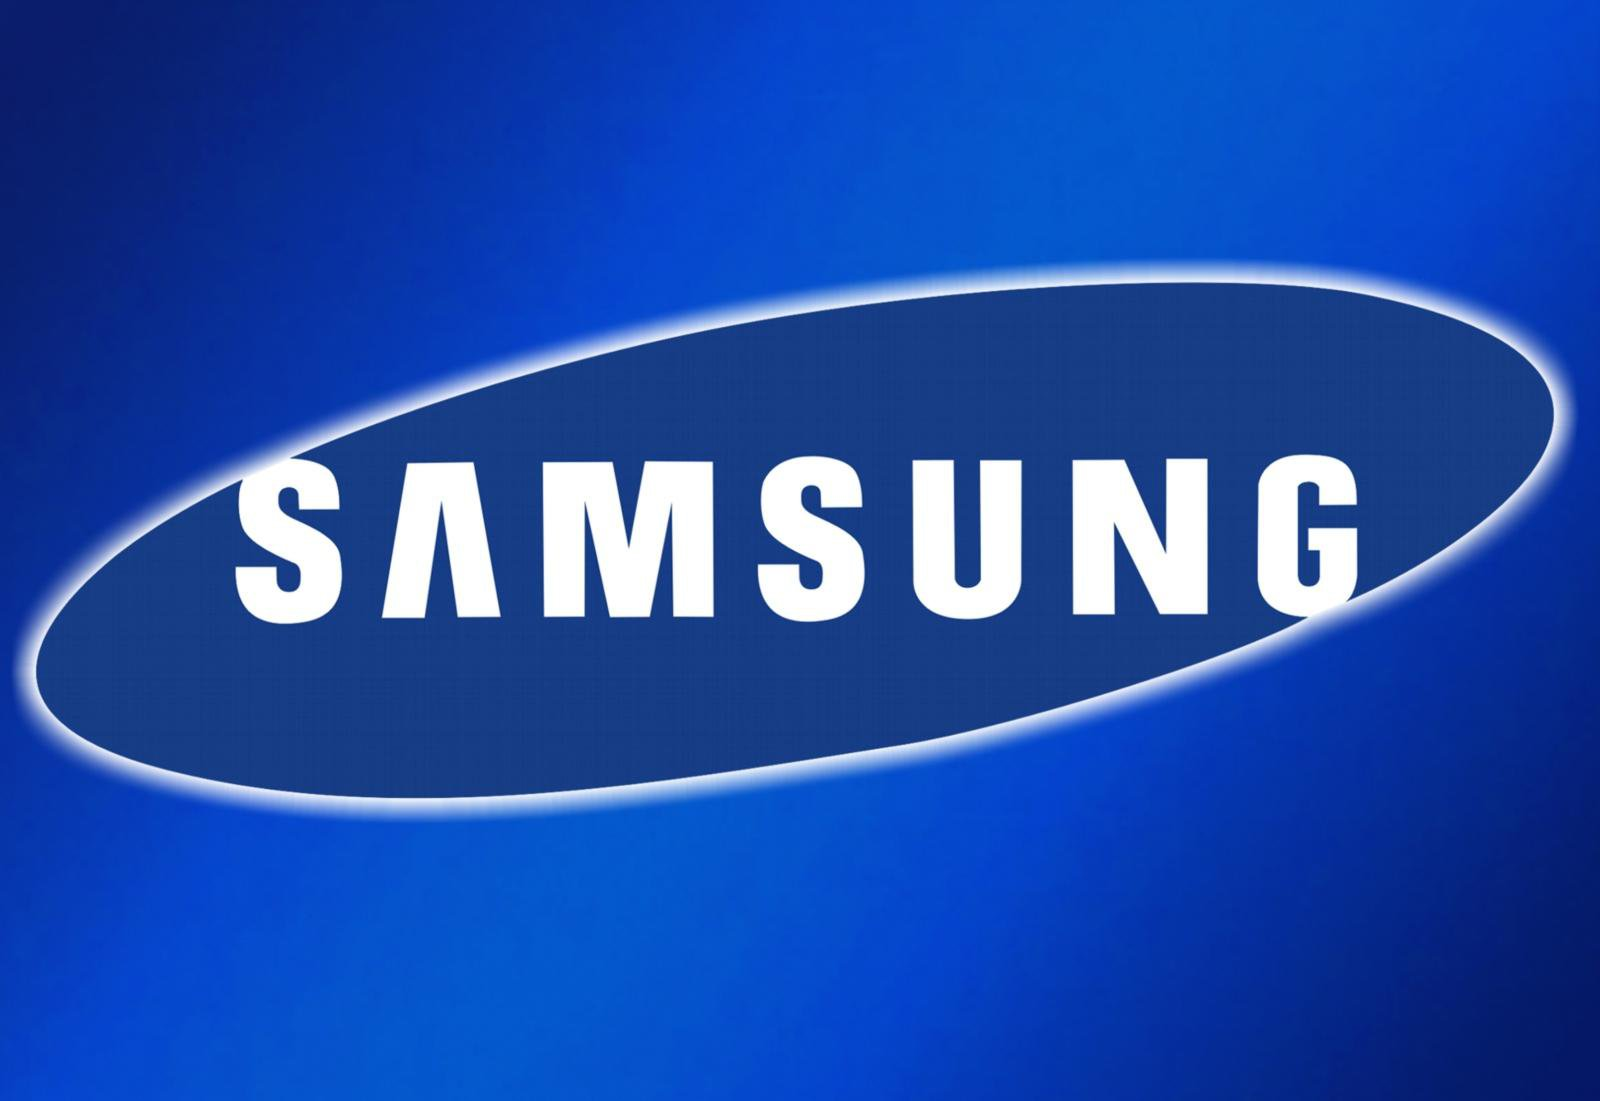 Samsung SM-G430 Android Smartphone Leaked Specs